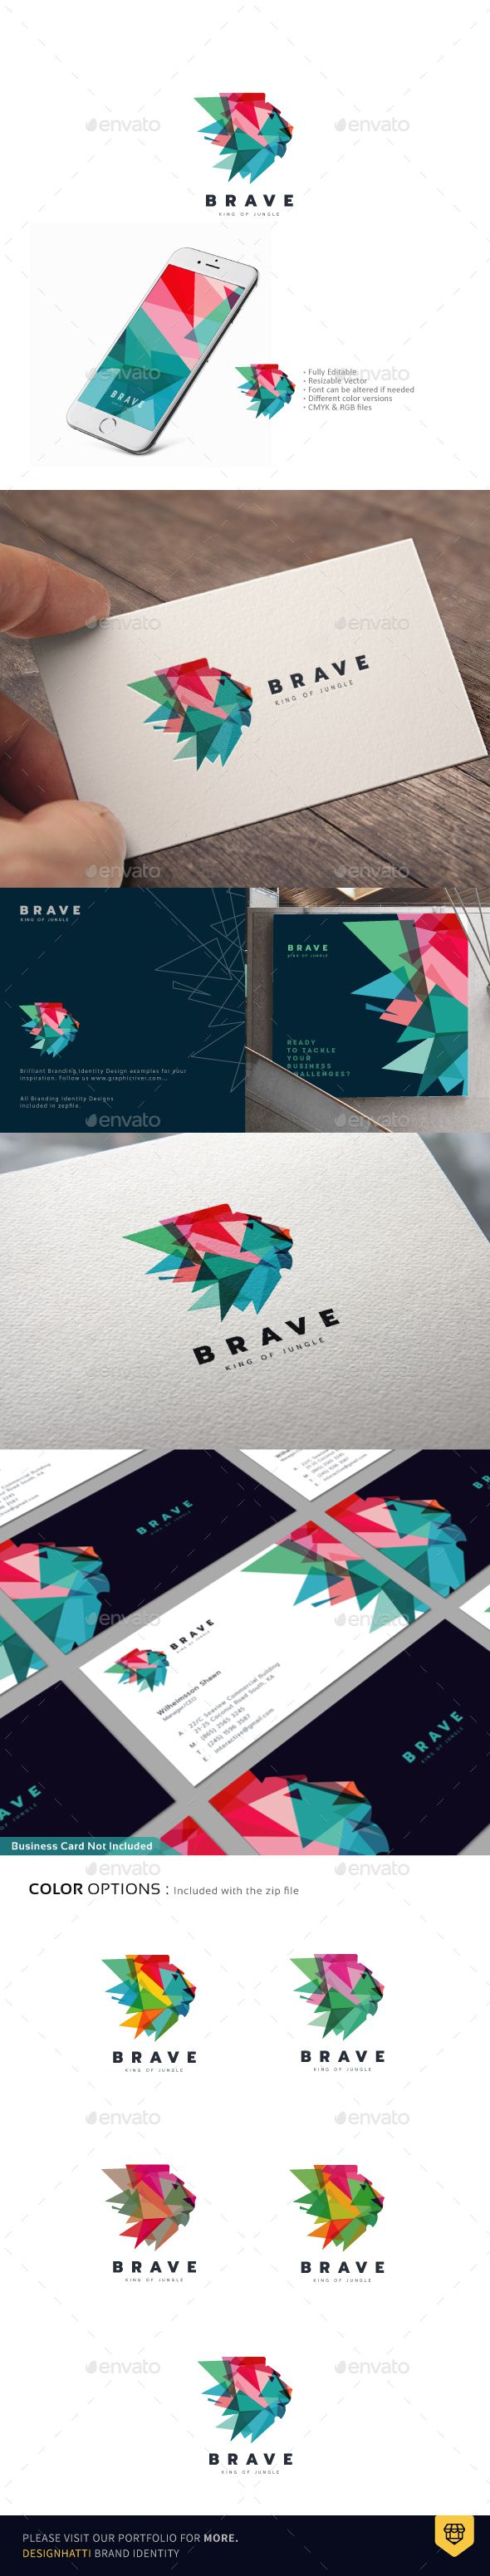 The Lion Logo Design Template - Animals Logo Templates PSD, Vector EPS, AI Illustrator. Download here: https://graphicriver.net/item/the-lion-logo/18483069?ref=yinkira